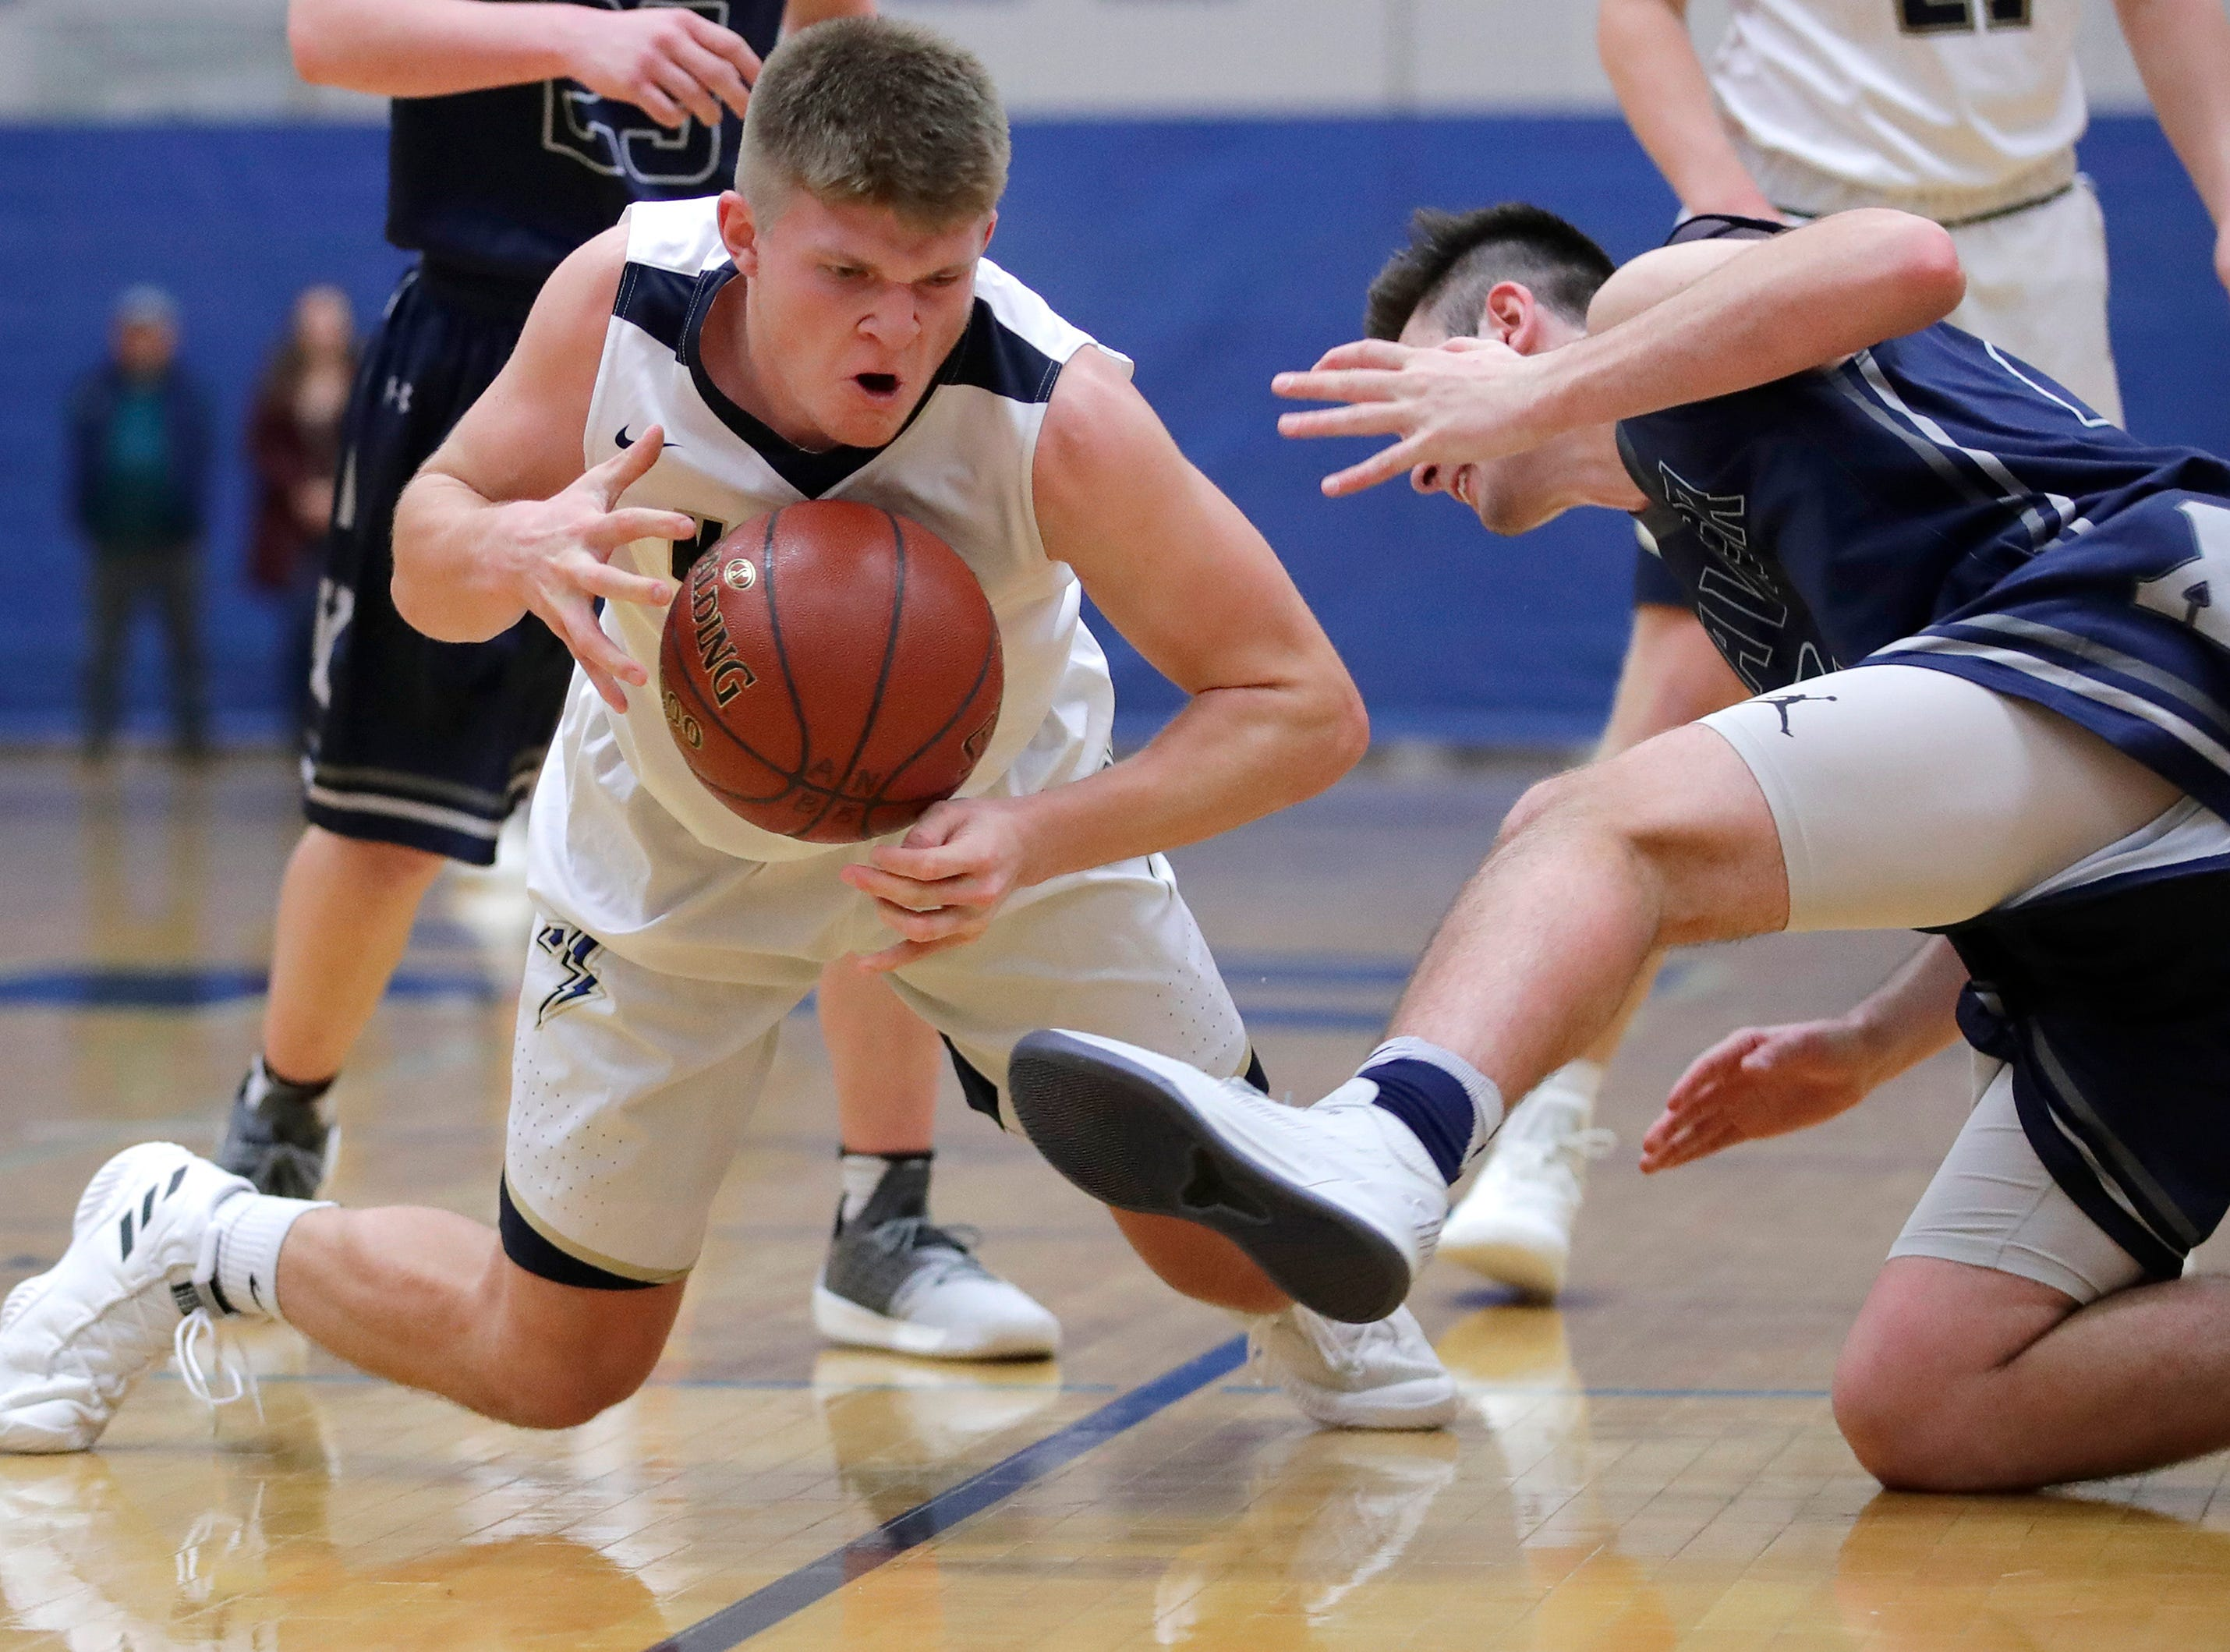 Appleton North High School's Devin Blom falls on a ball during their game against Xavier High School Wednesday, Nov. 21, 2018, in Appleton, Wis.Danny Damiani/USA TODAY NETWORK-Wisconsin